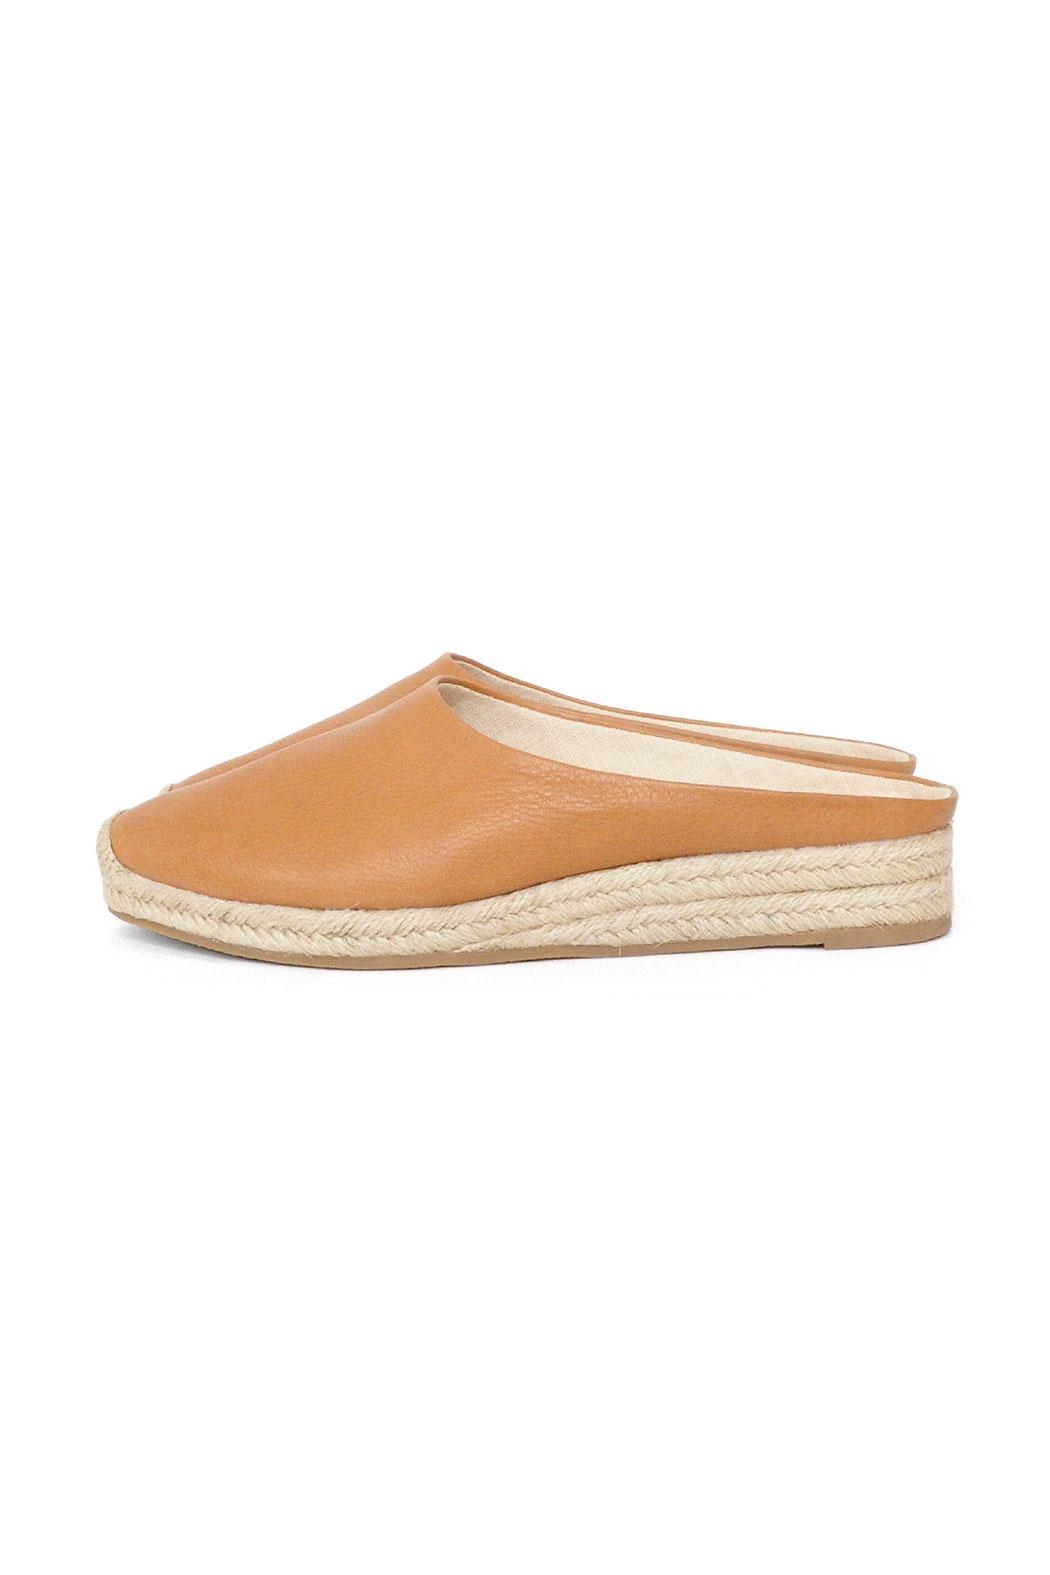 Dolce Vita Tan Leather Espadrilles - Main Image